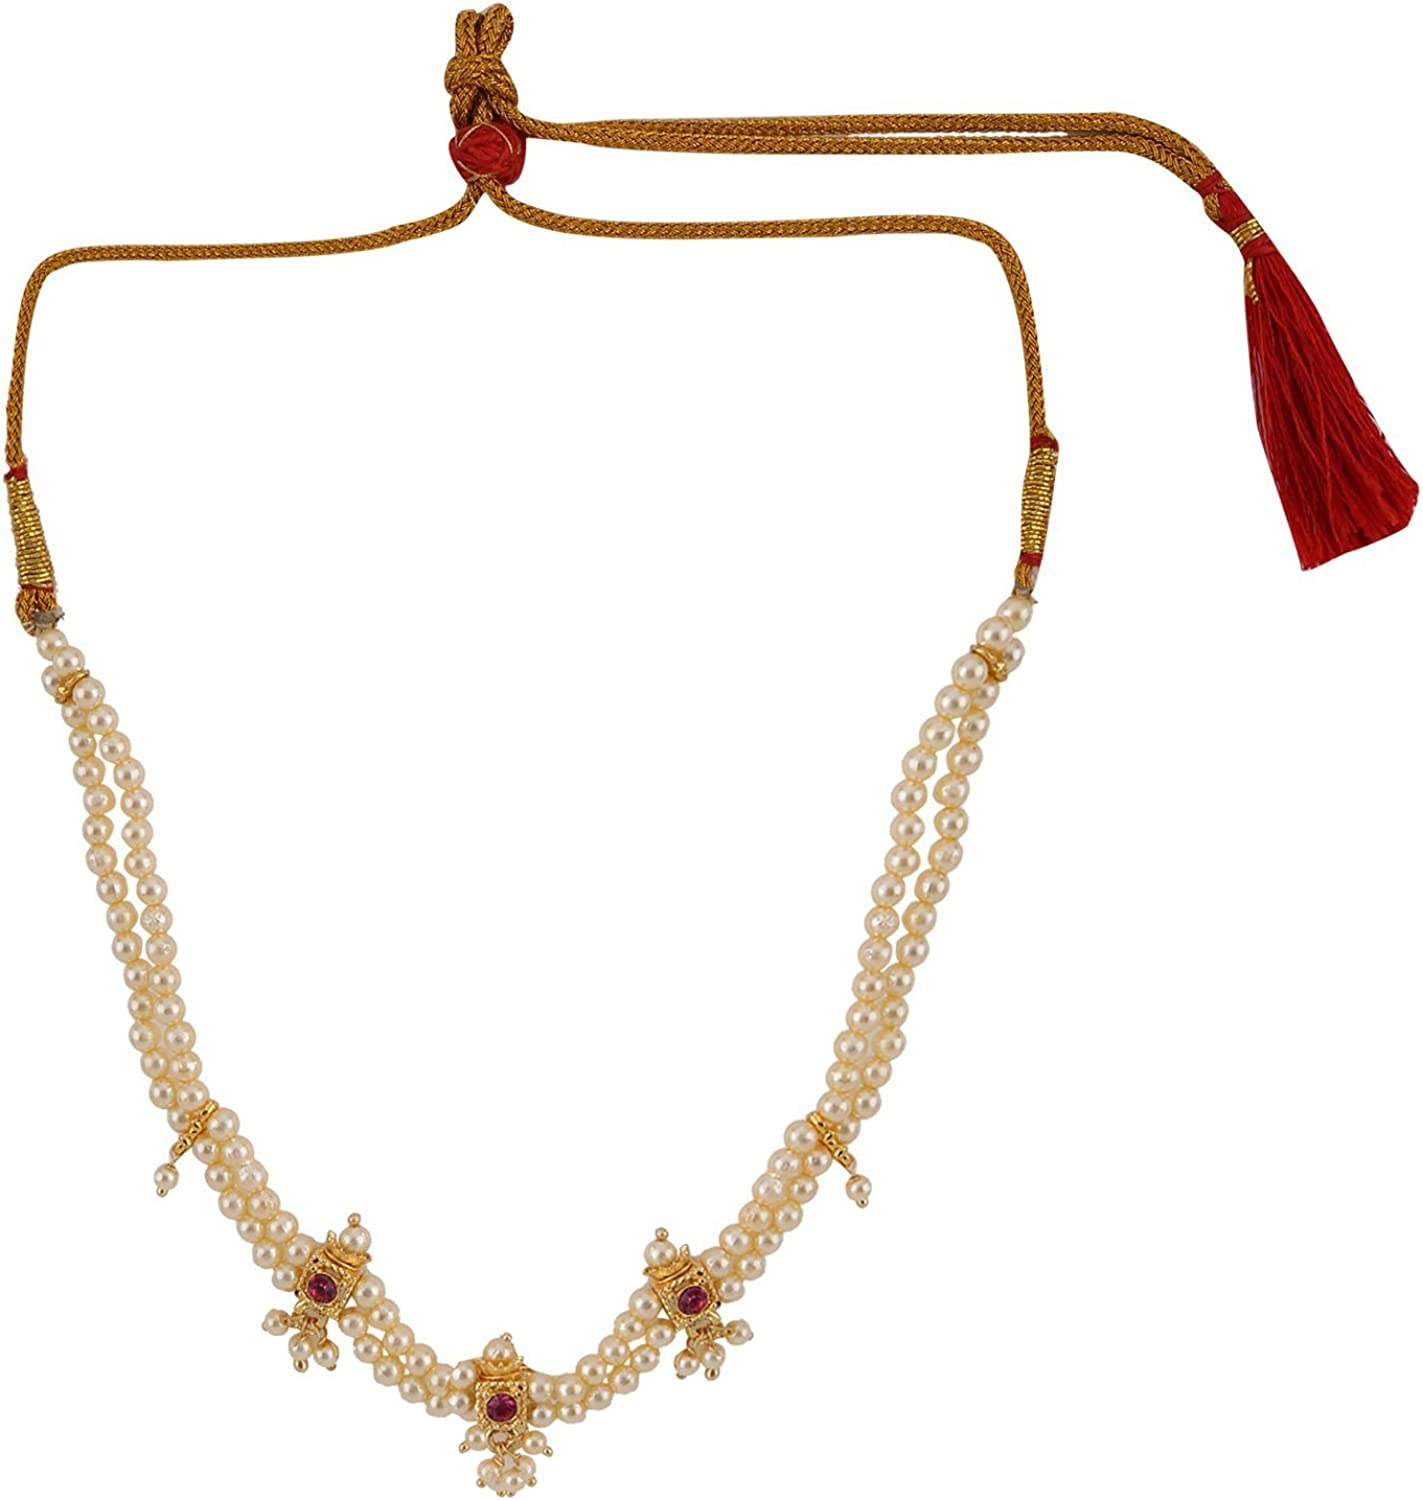 Efulgenz Indian Bollywood Traditional White Red Rhinestone Faux Ruby Pearl Designer Thusi Style Necklace in Antique 18K Gold Tone for Women and Girls